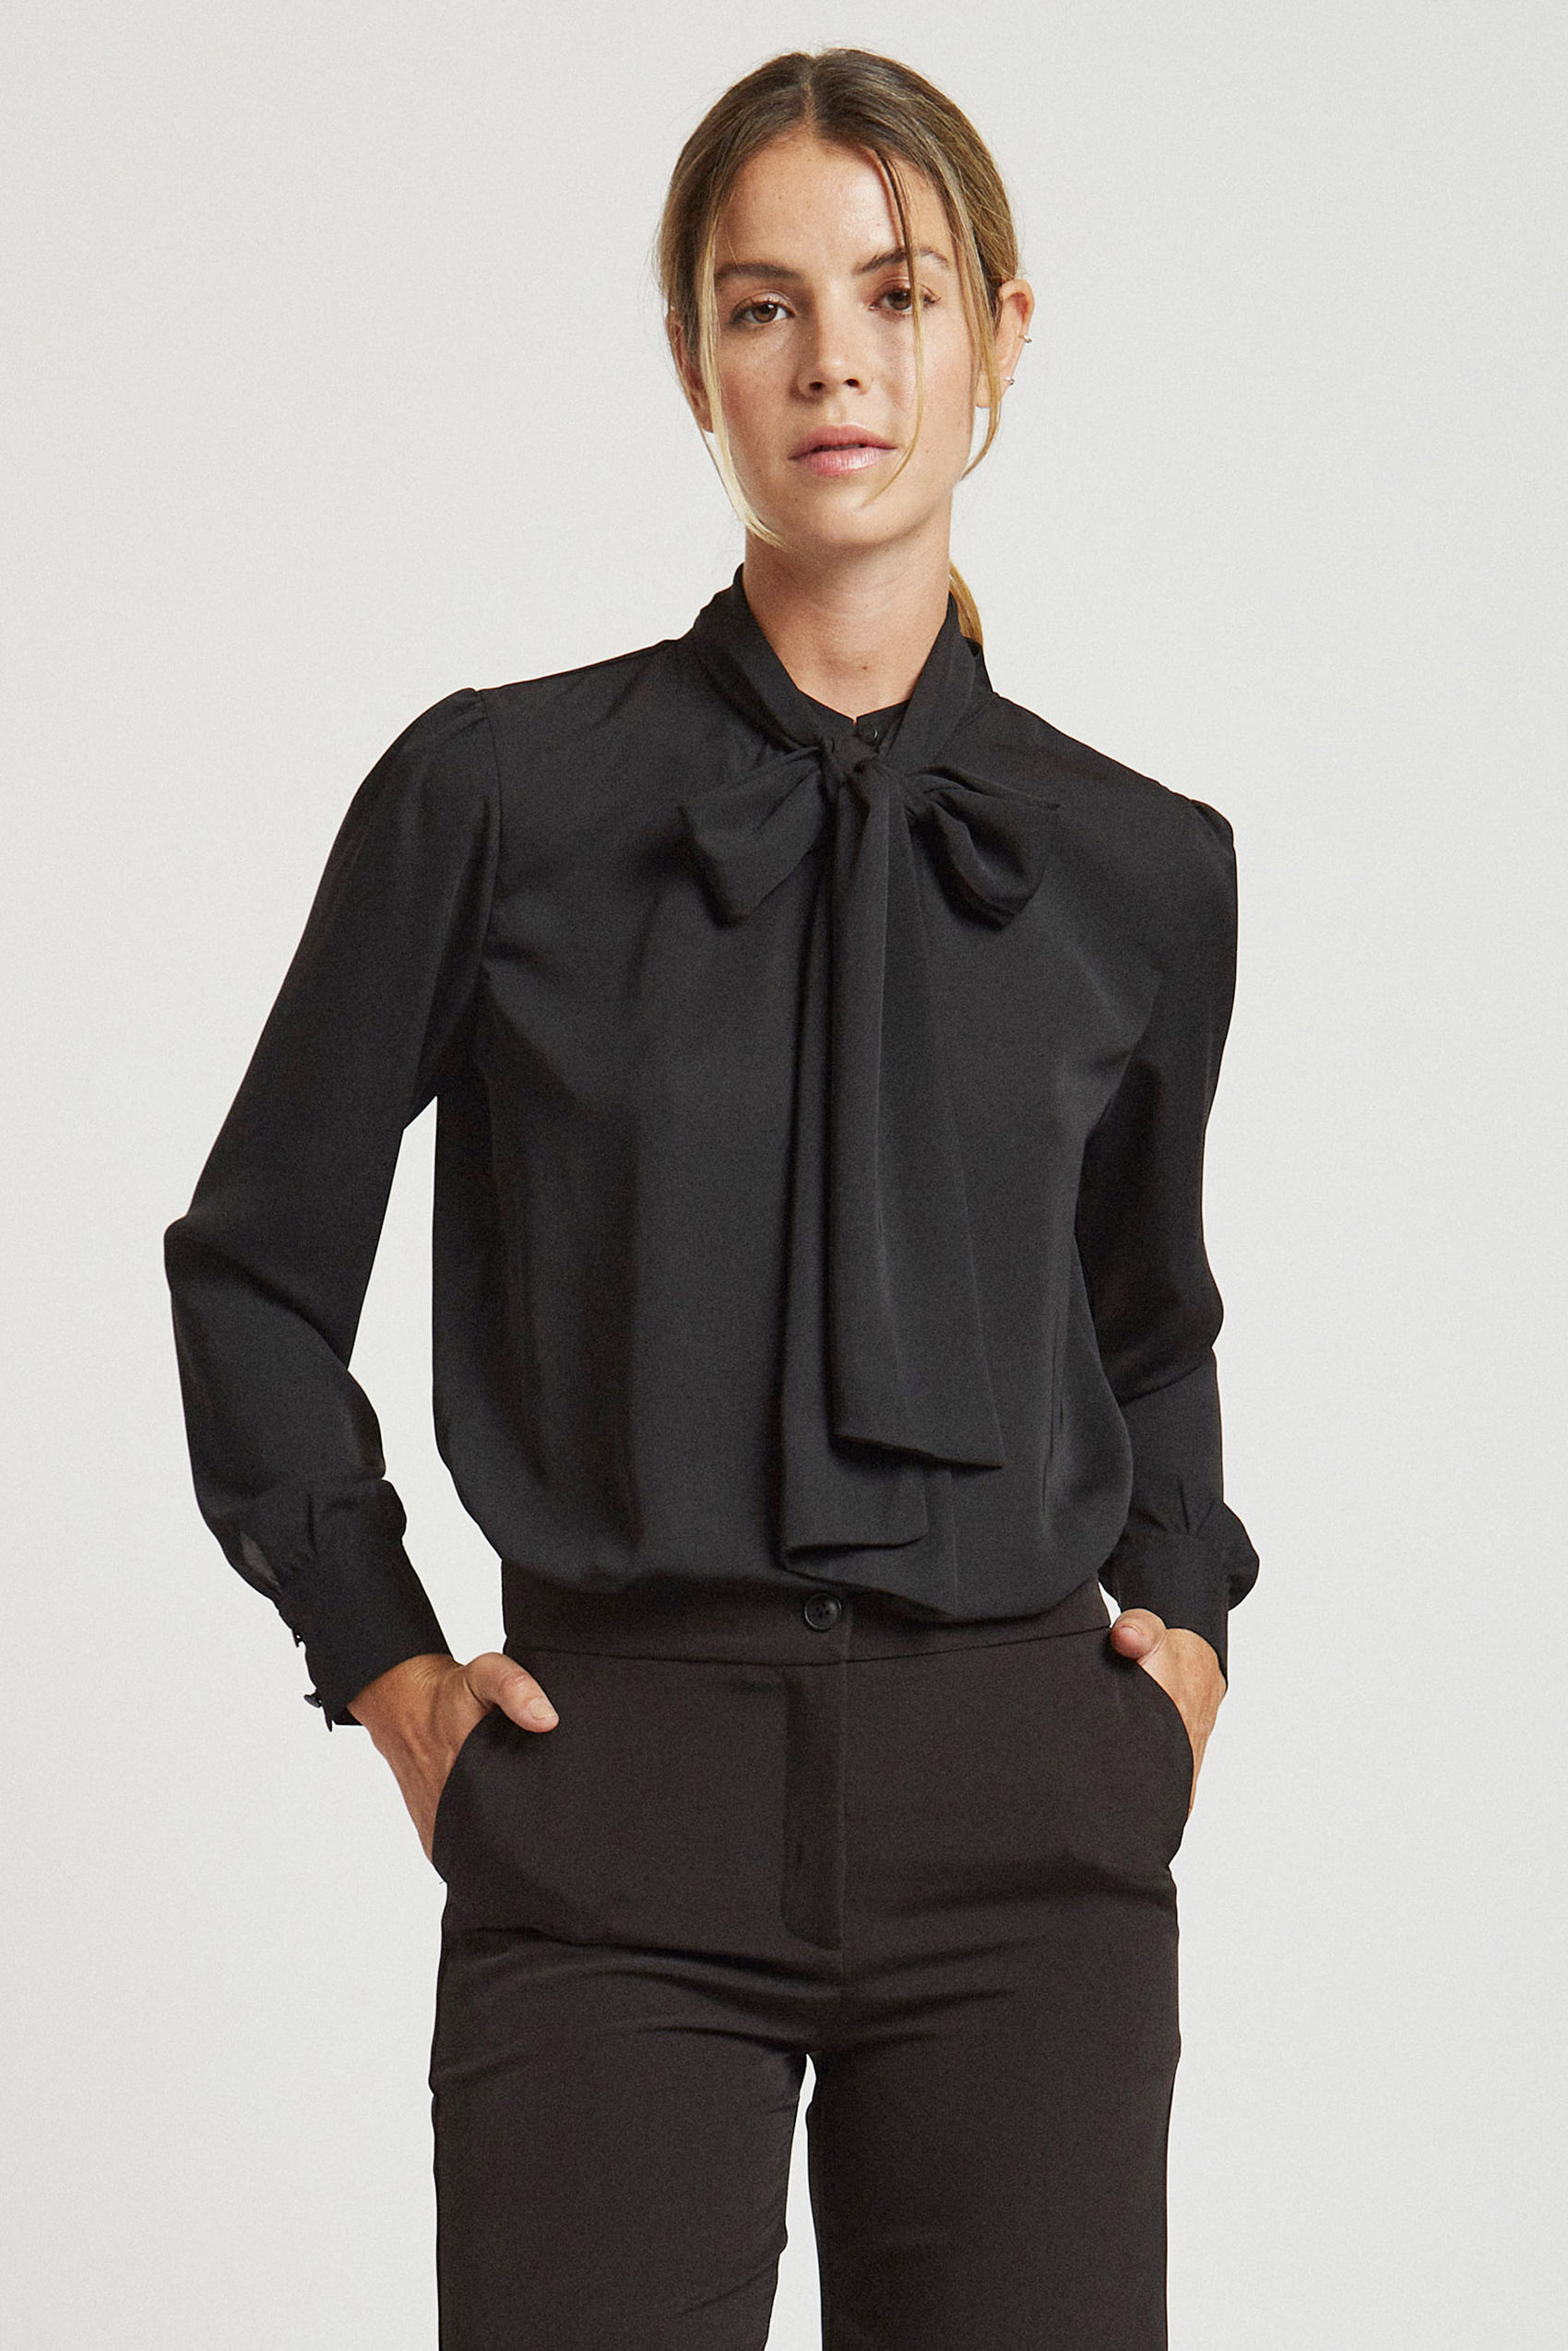 awada_camisa-amelie_48-06-2021__picture-20251